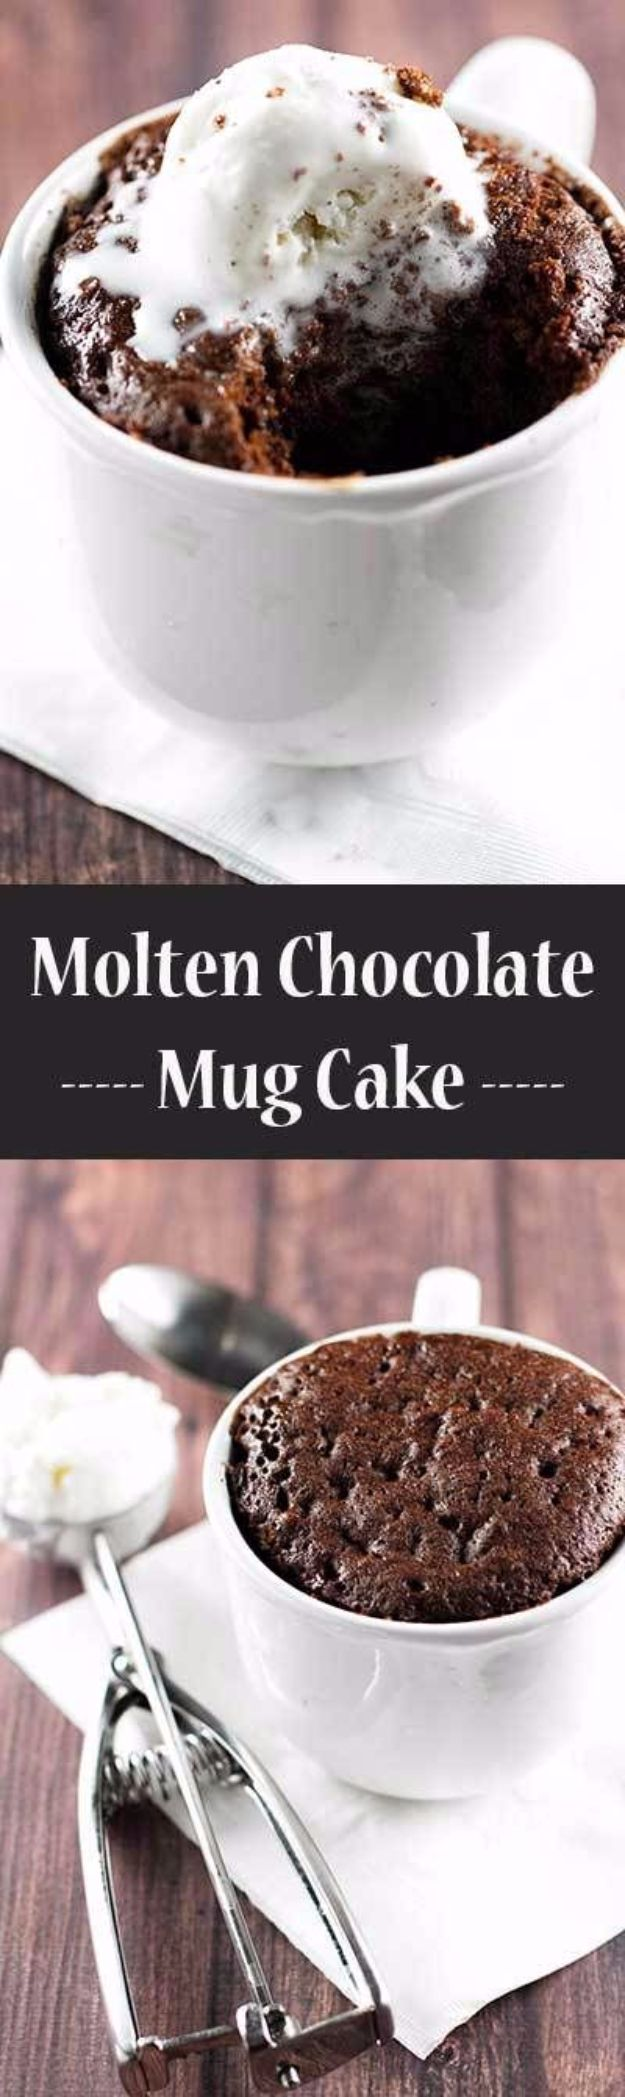 Easy Snacks You Can Make In Minutes - Molten Chocolate Mug Cake - Quick Recipes and Tricks for Making After Workout and After School Snack - Fast Ideas for Instant Small Meals and Treats - No Bake, Microwave and Simple Prep Makes Snacking Fun #snacks #recipes